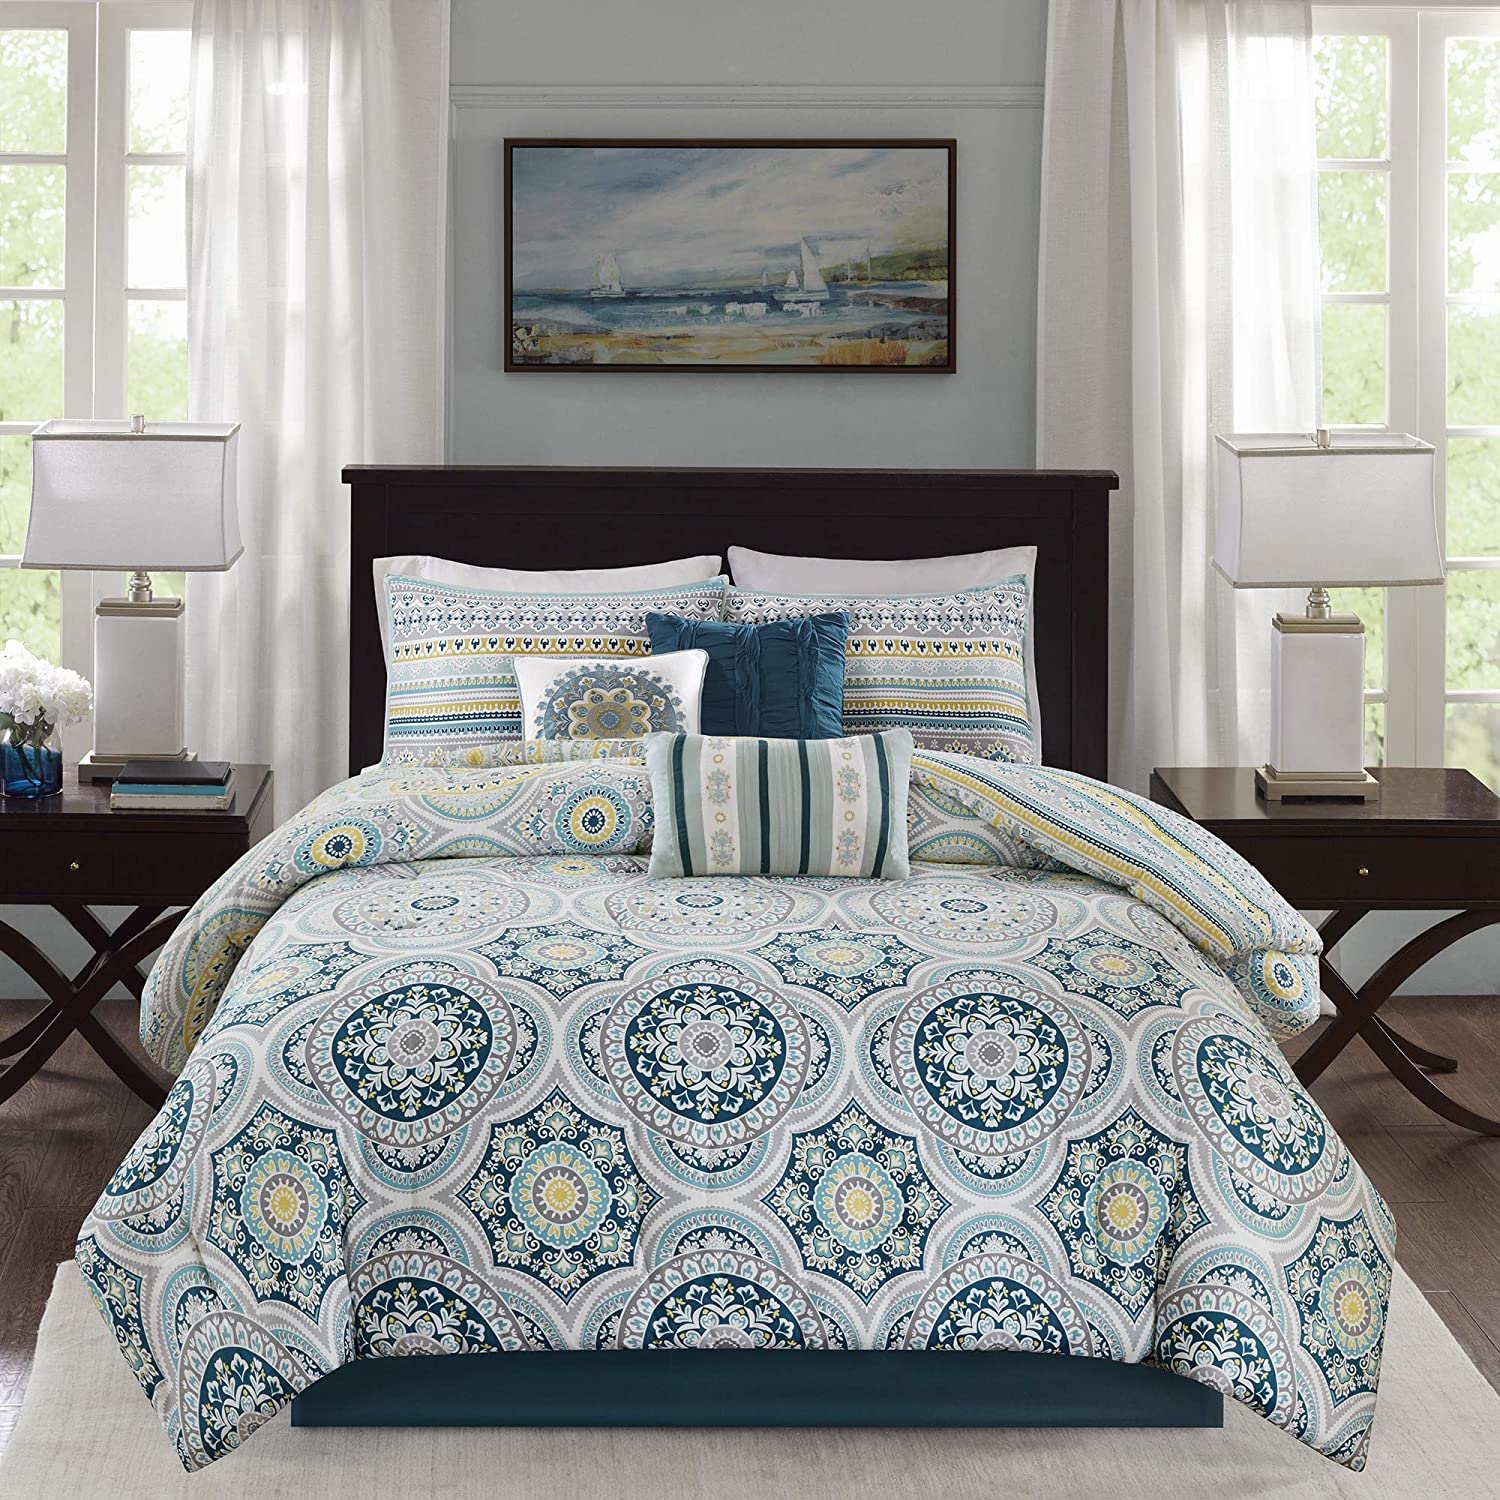 Madison Park Mercia Queen Size Bed Comforter Set Bed in A Bag - Navy Blue, Medallion – 7 Pieces Bedding Sets – Cotton Sateen Bedroom Comforters, Teal (MP10-4887)